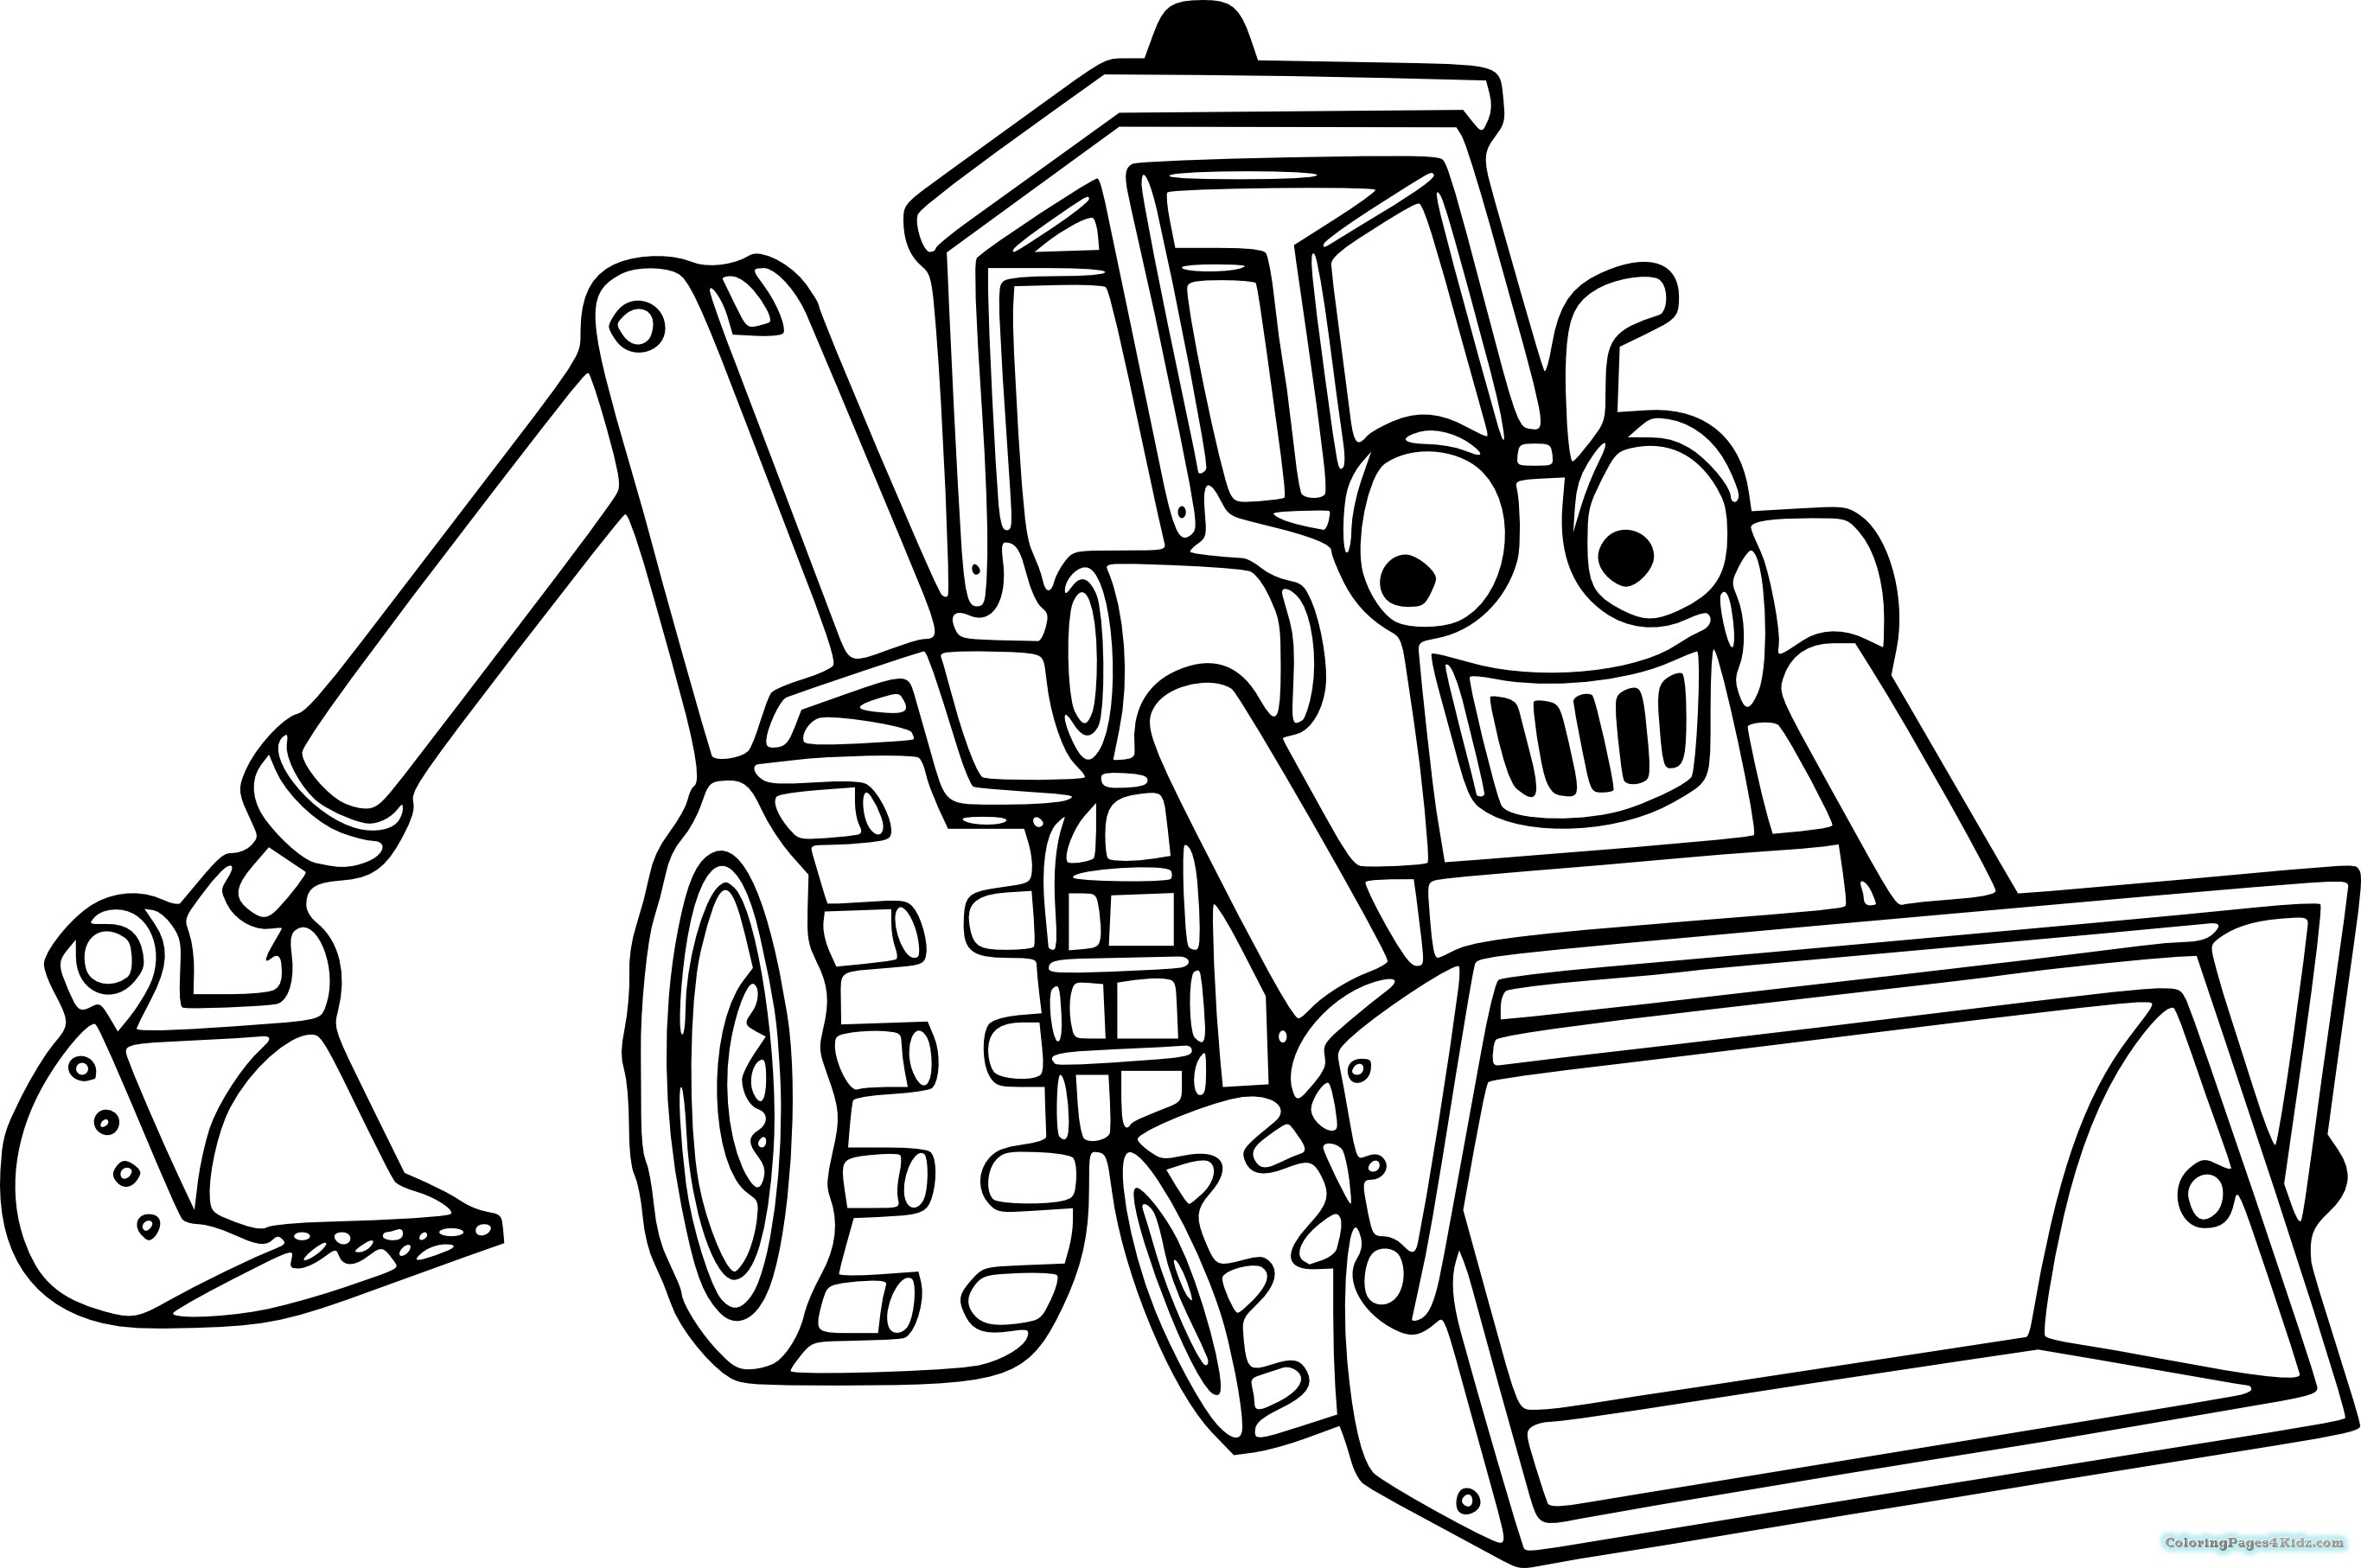 coloring page tractor rugged tractor coloring pages yescoloring free coloring tractor page